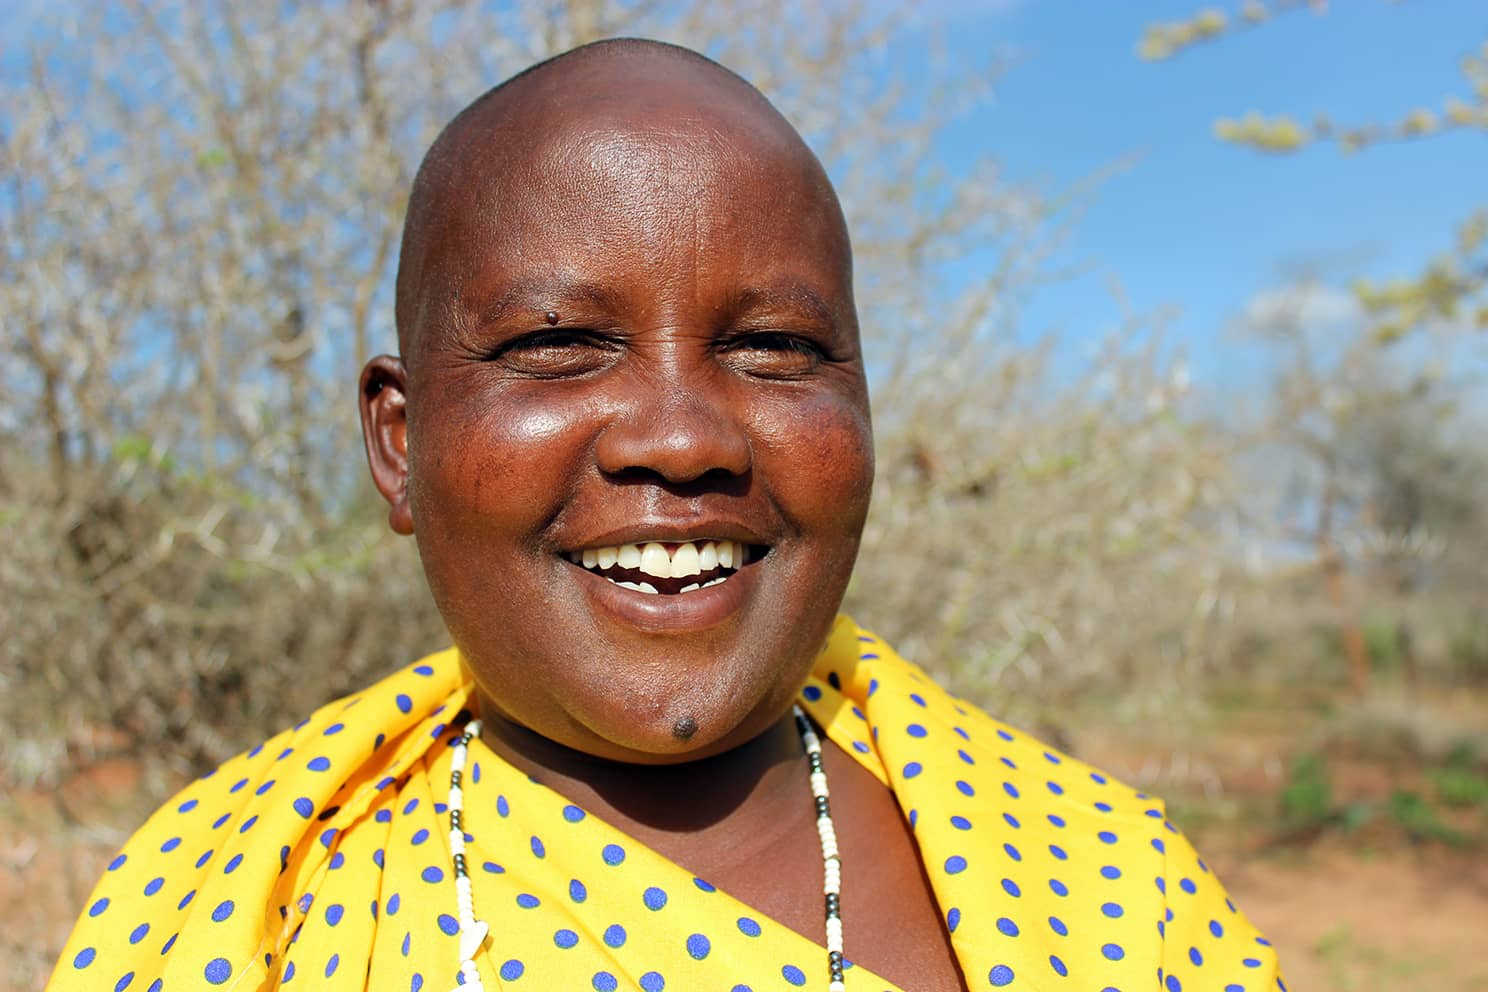 An African woman smiling